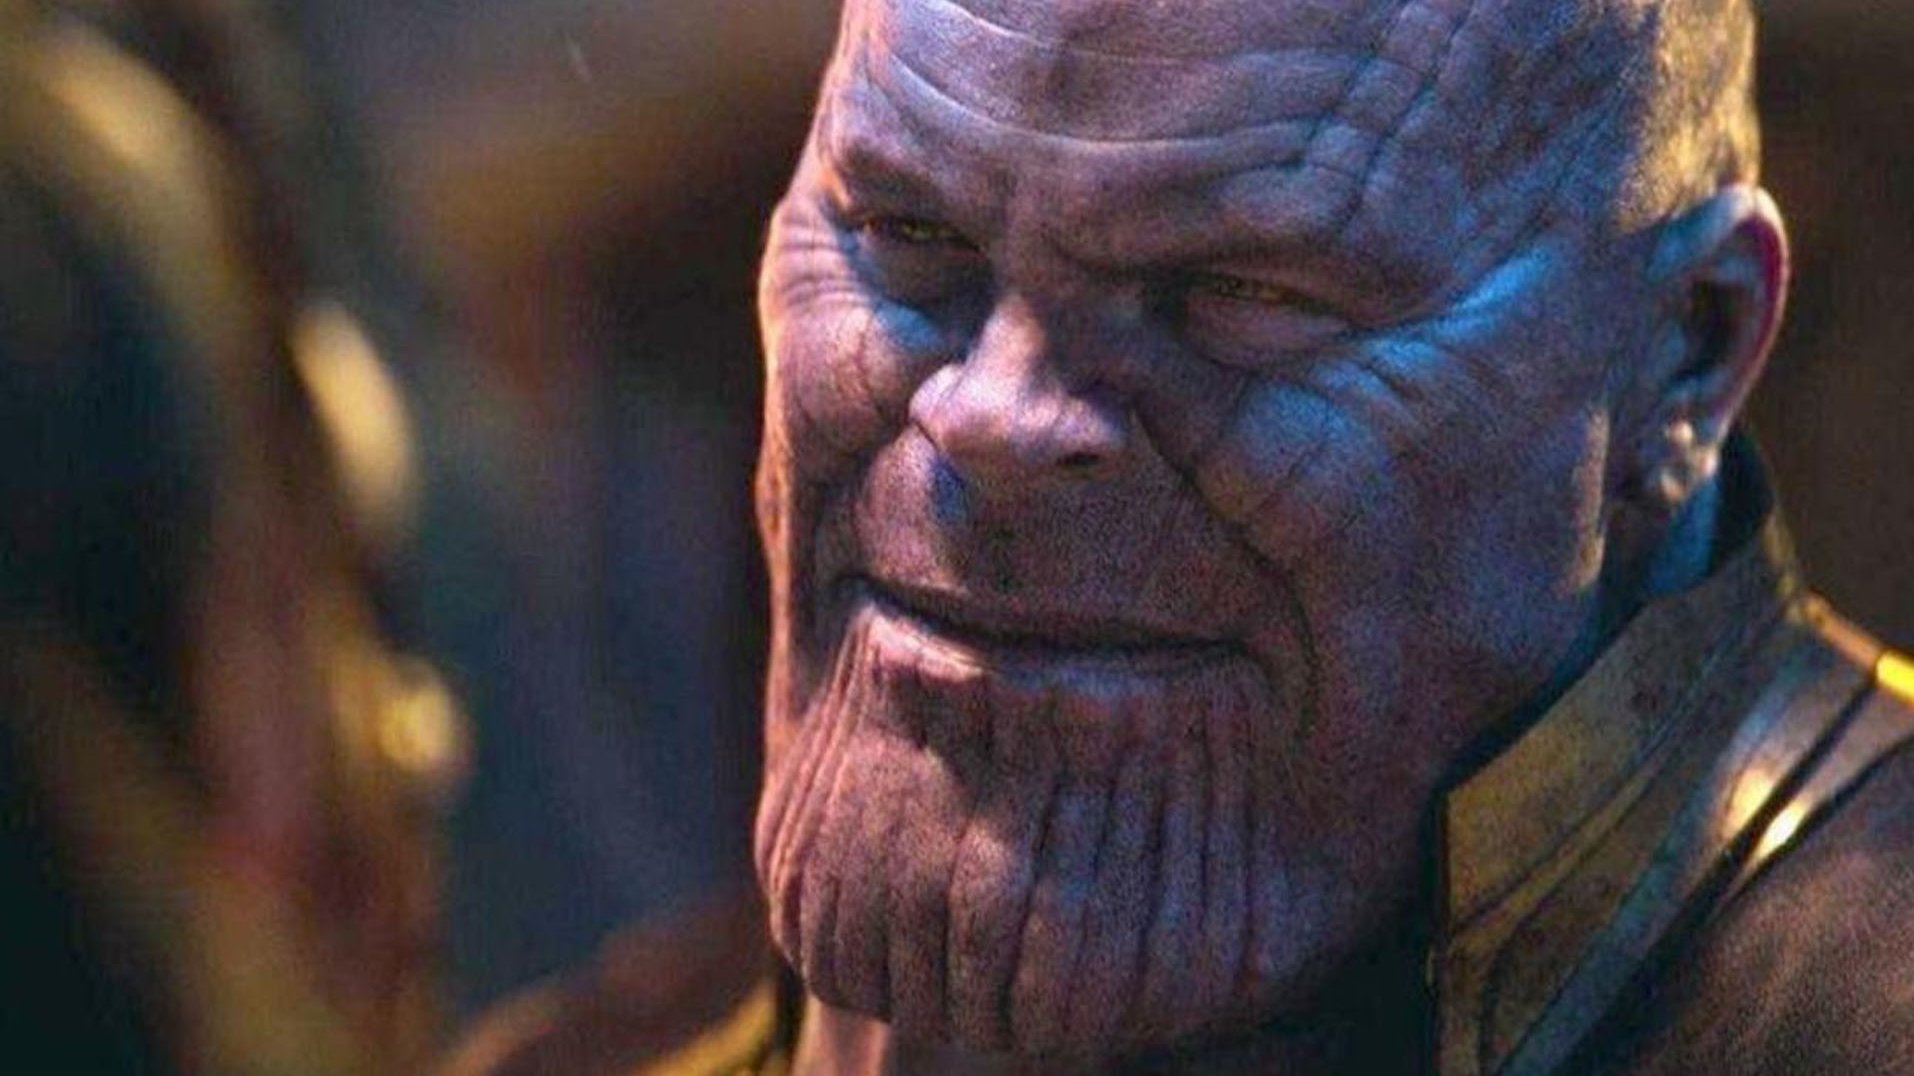 It looks like Thanos is returning to Fortnite